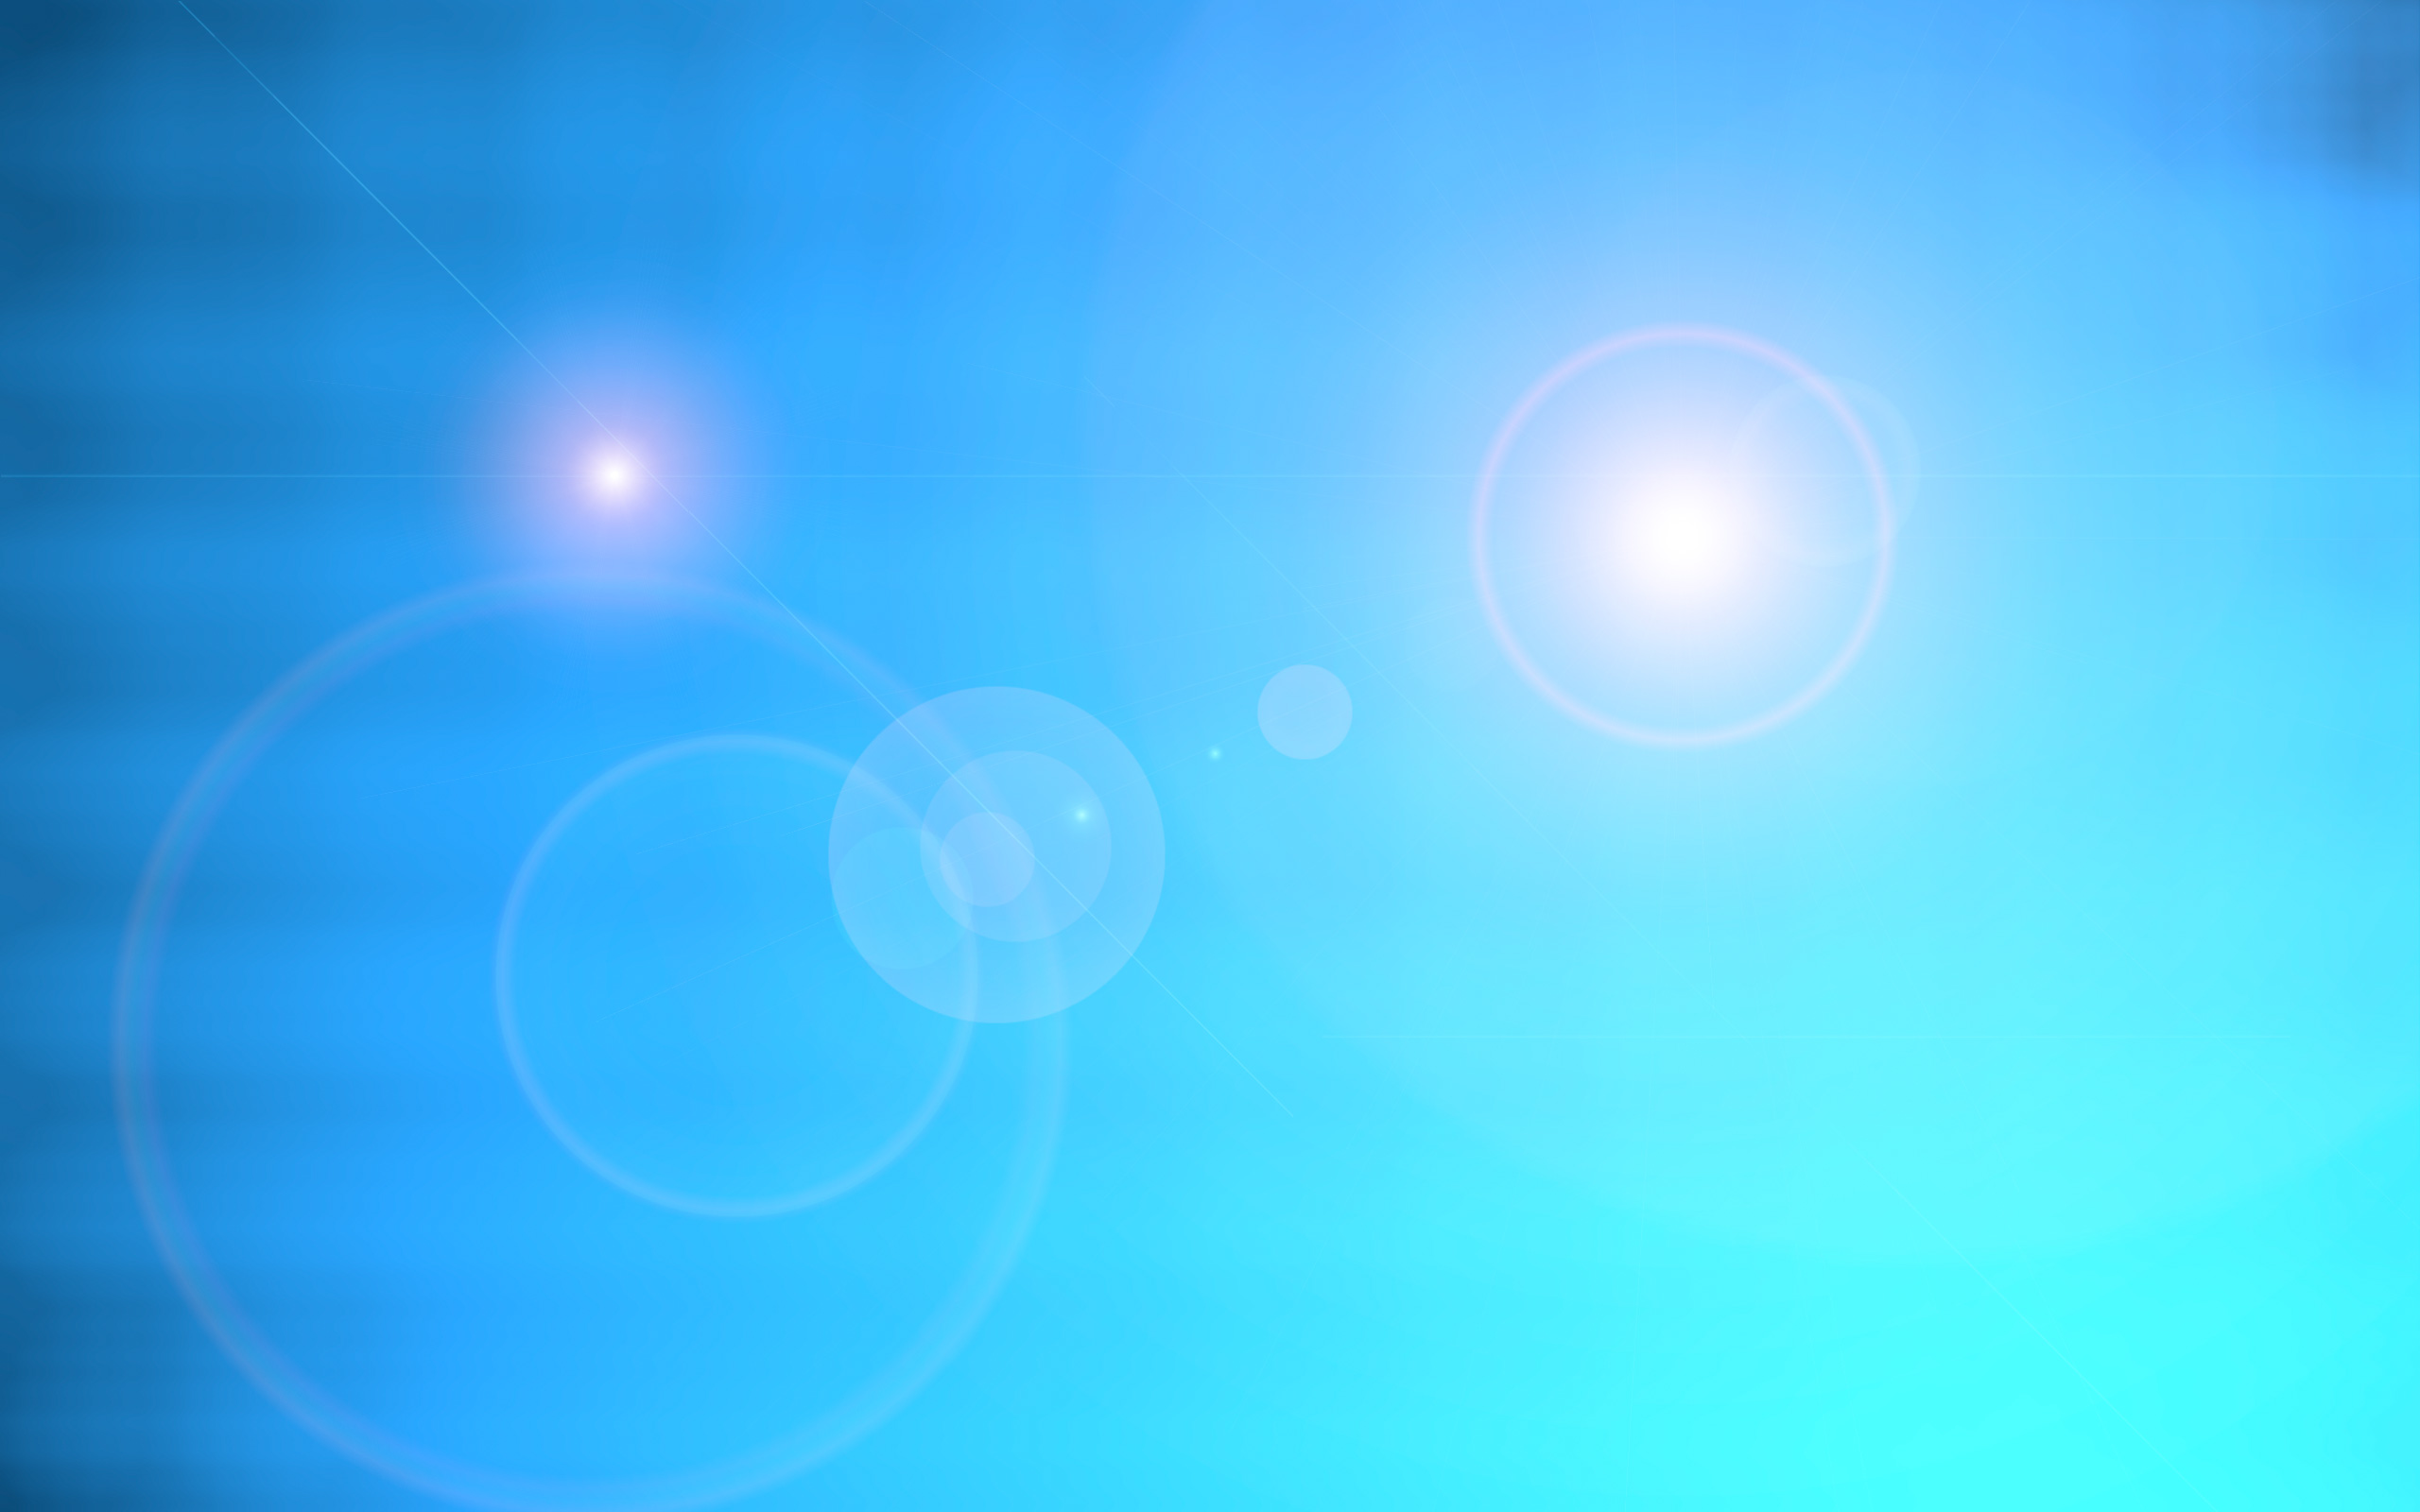 Light Blue Wallpaper 7841 2560x1600 px ~ HDWallSource.com